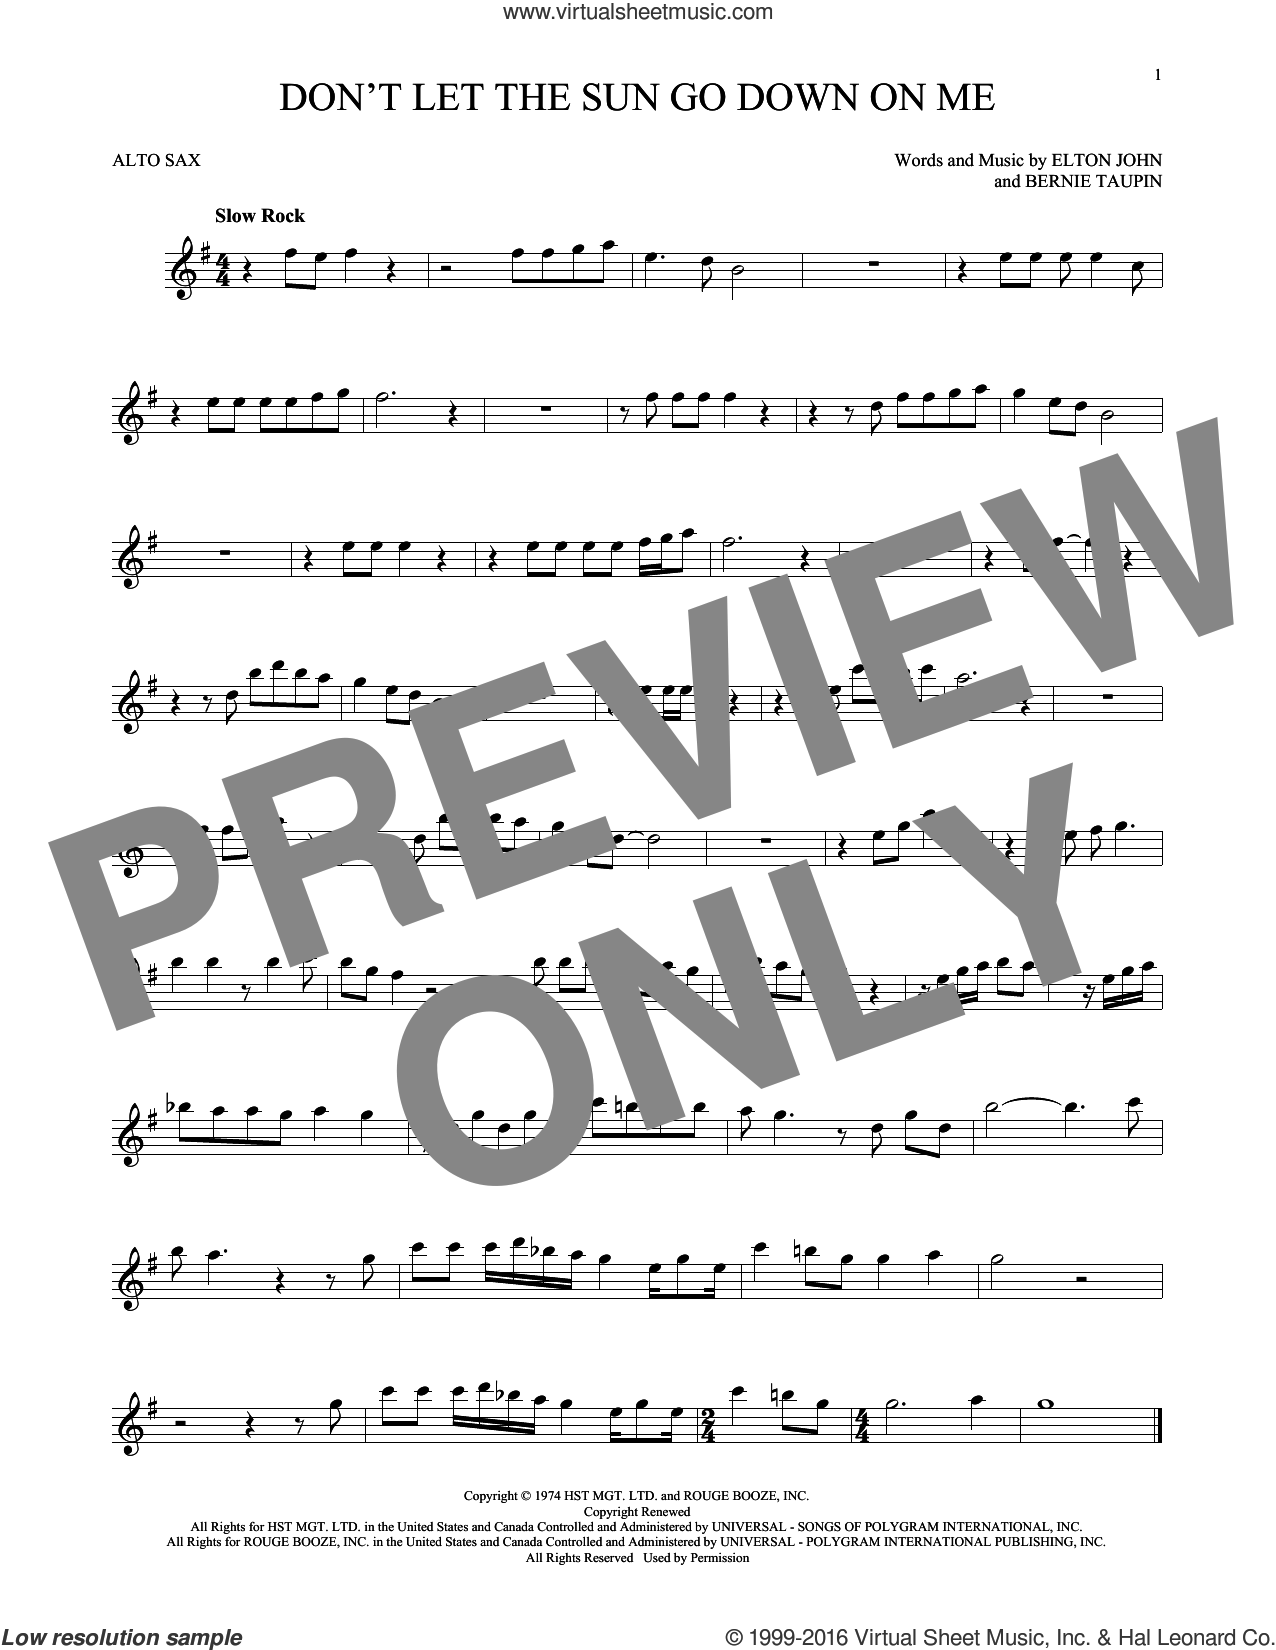 Don't Let The Sun Go Down On Me sheet music for alto saxophone solo by Bernie Taupin and Elton John. Score Image Preview.